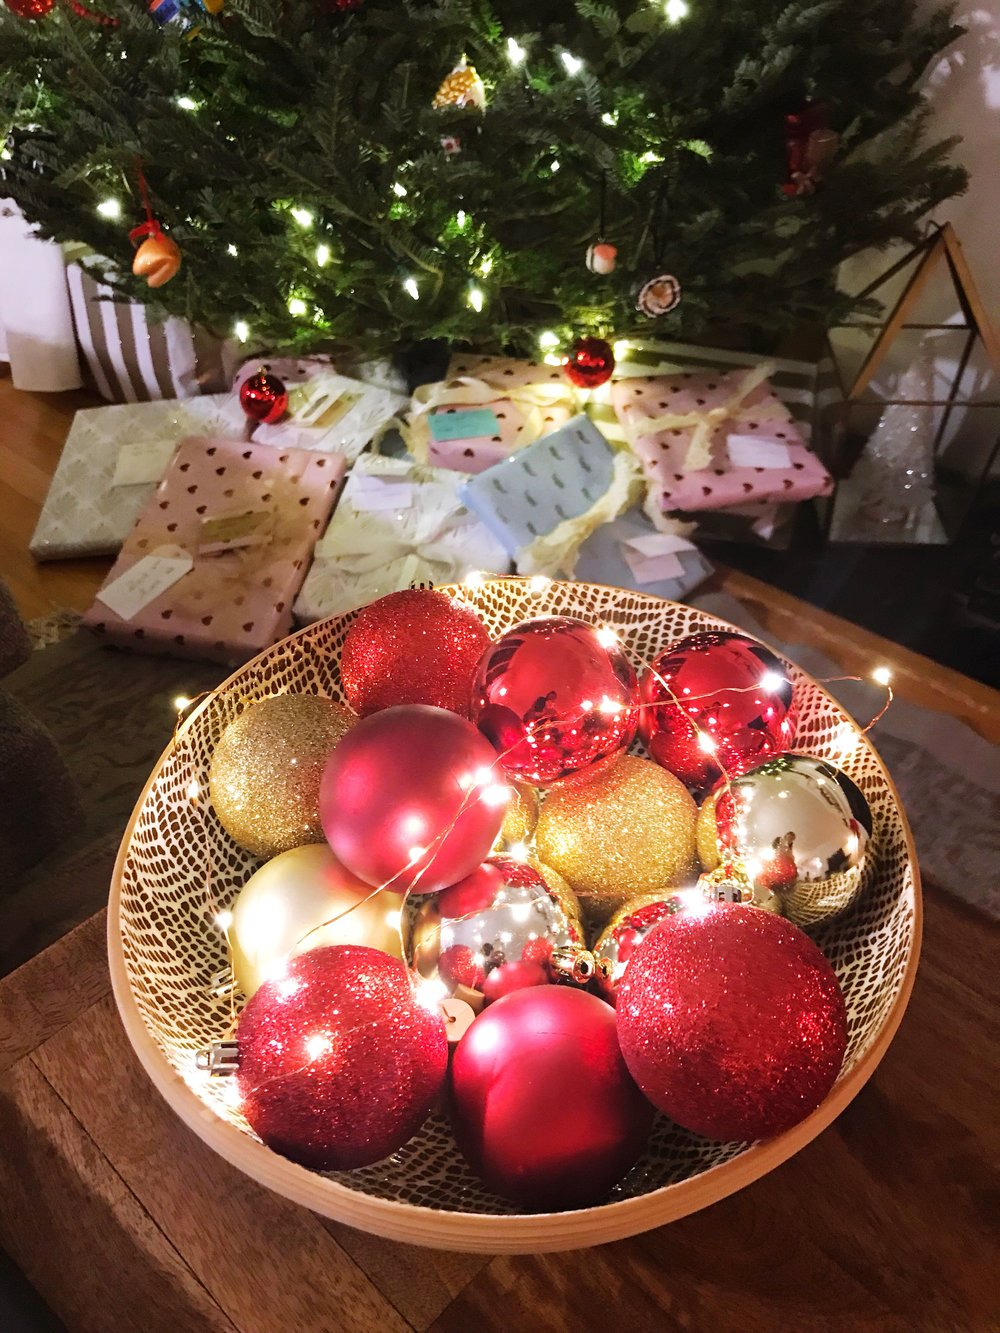 This bowl of ornaments has a few leftover fairy light strands from  our wedding exit  in it! It's so cozy and festive to me to turn on the lights at night.